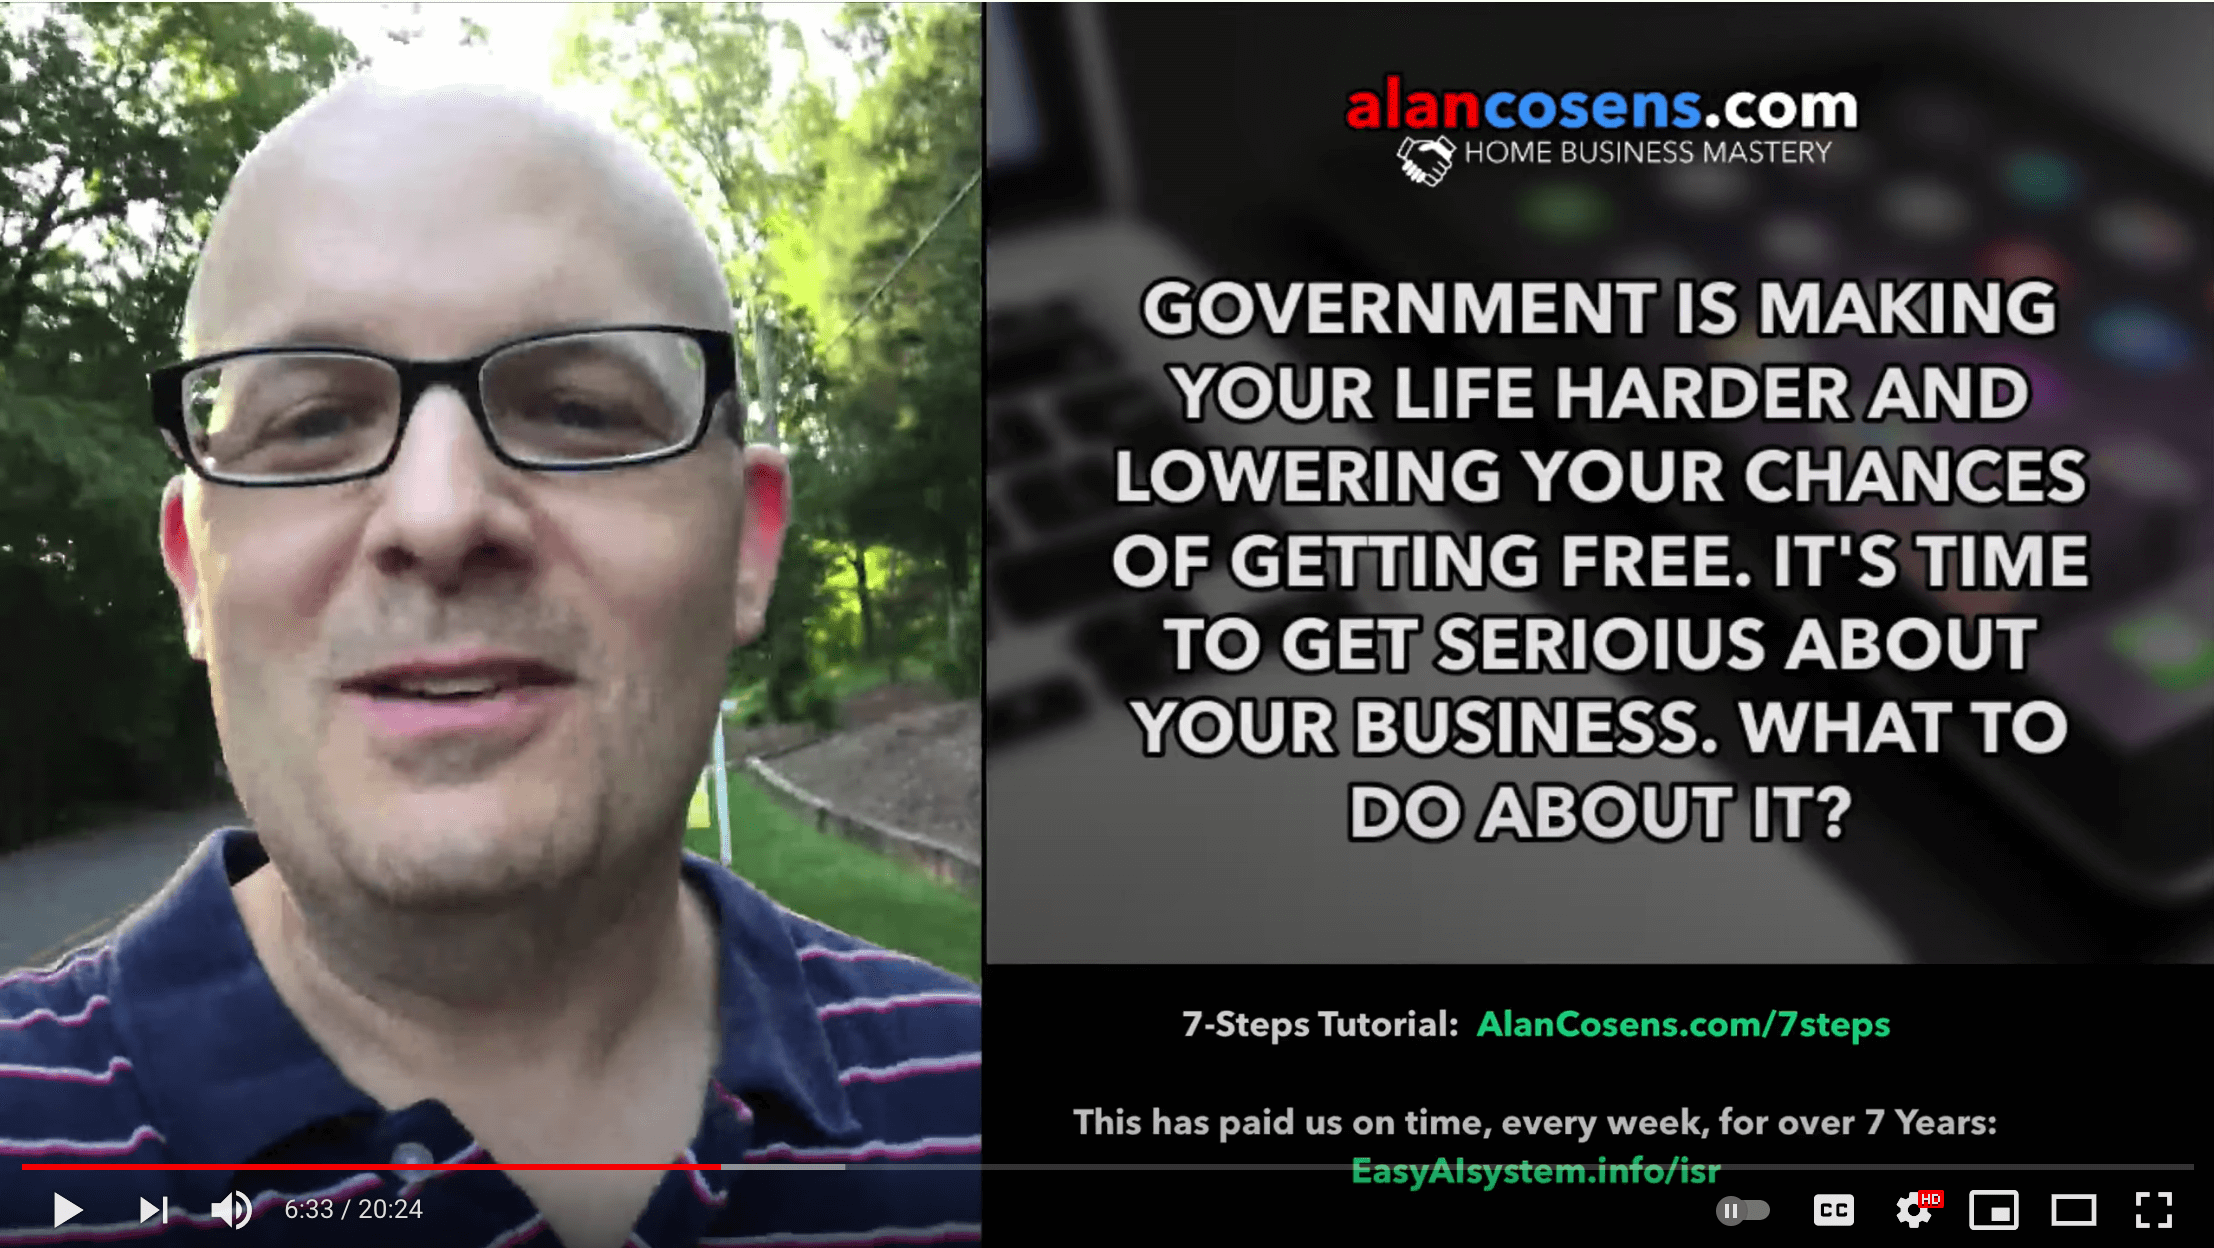 How Will You Overcome Bad Gov't Policy, Inflation, and More Coming Ridiculousness?